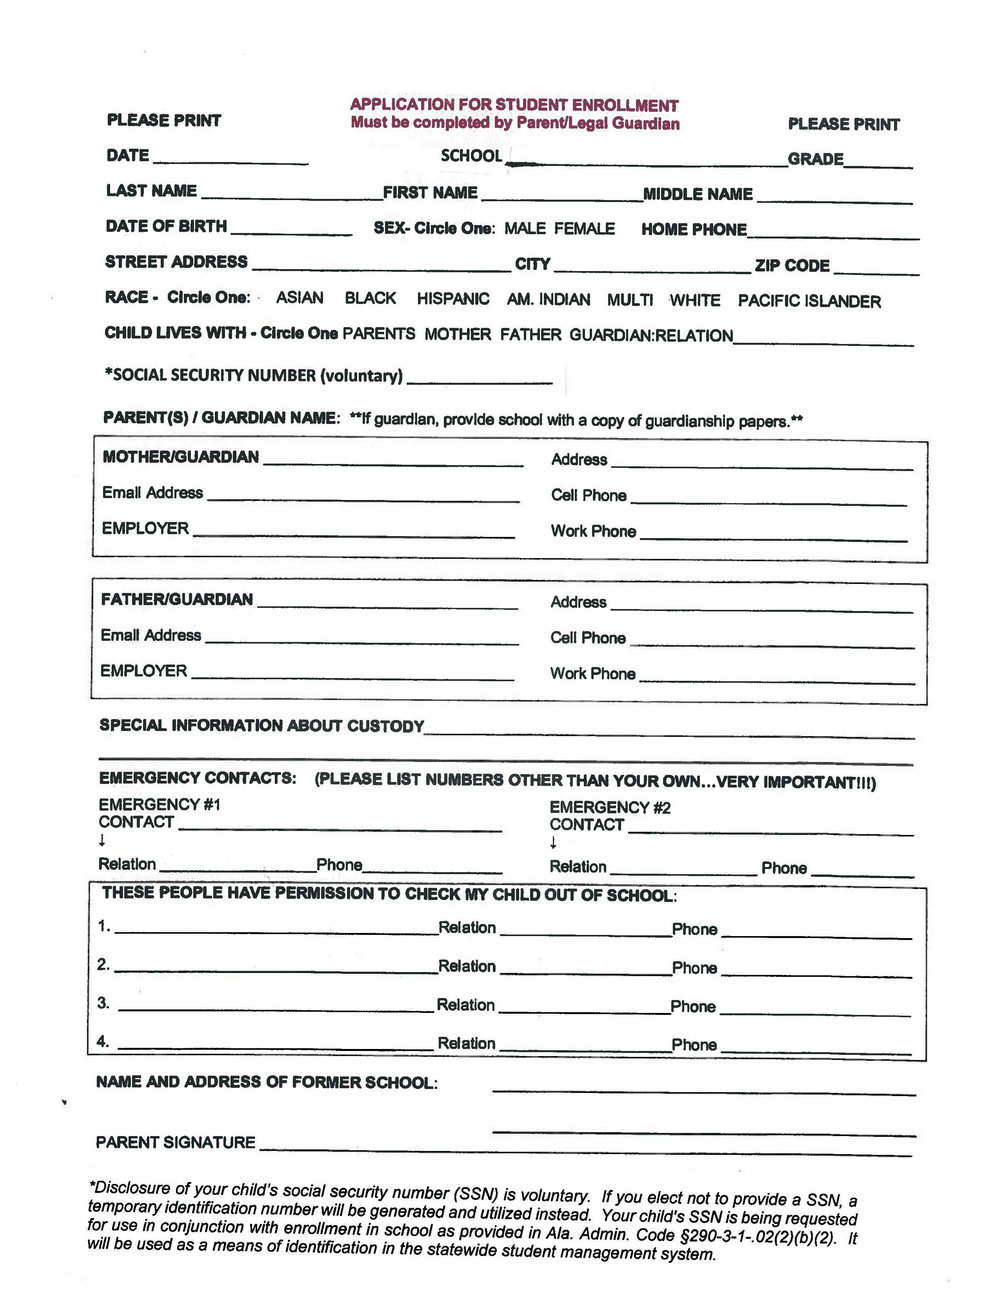 Small Estate Affidavit Form New York